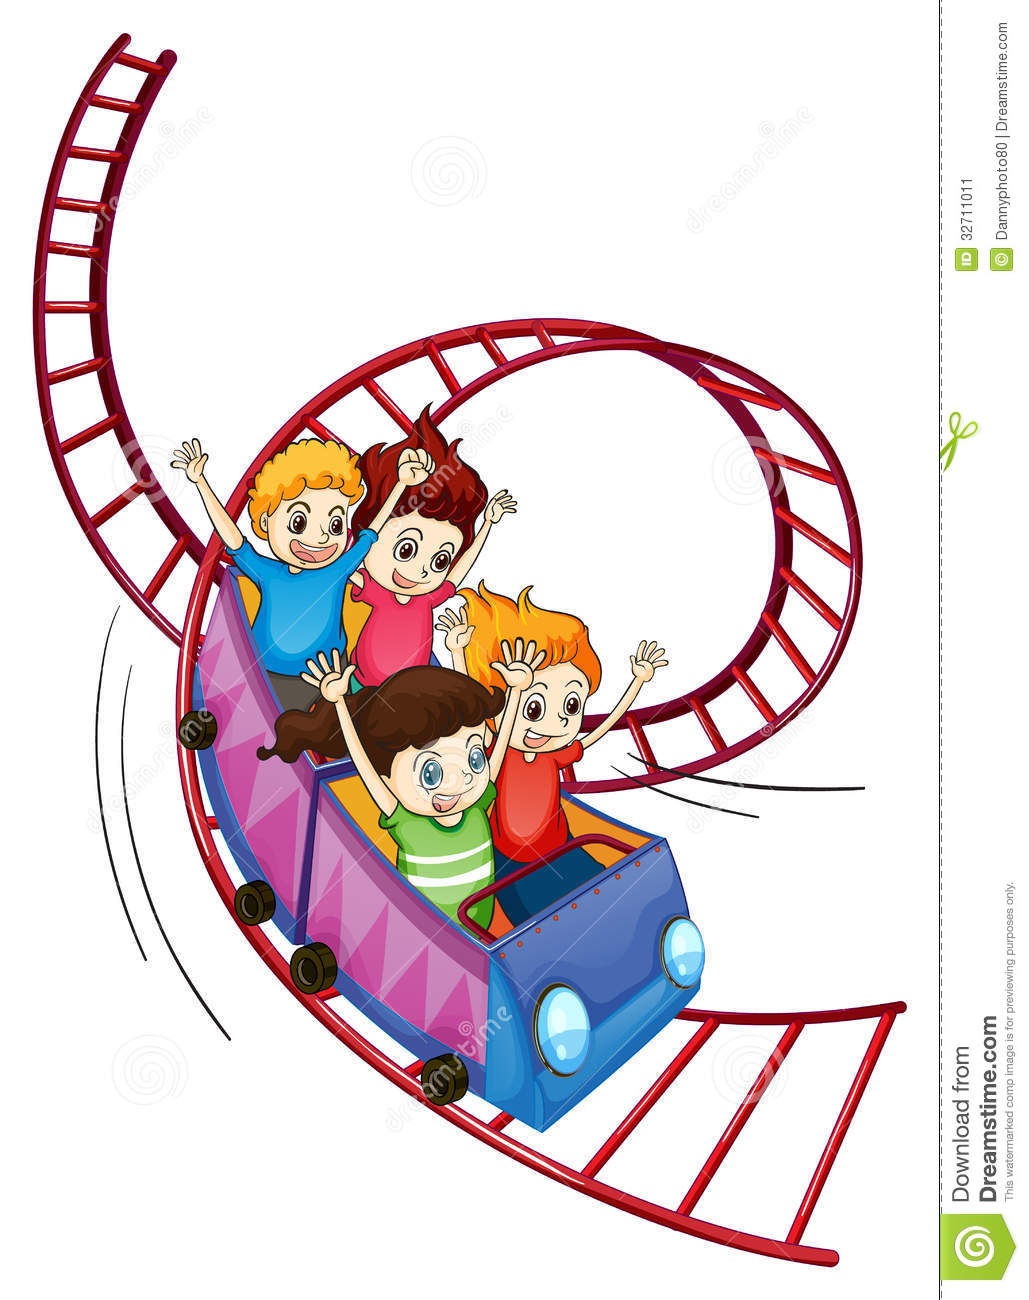 ... of brave kids riding in a roller coaster ride on a white background